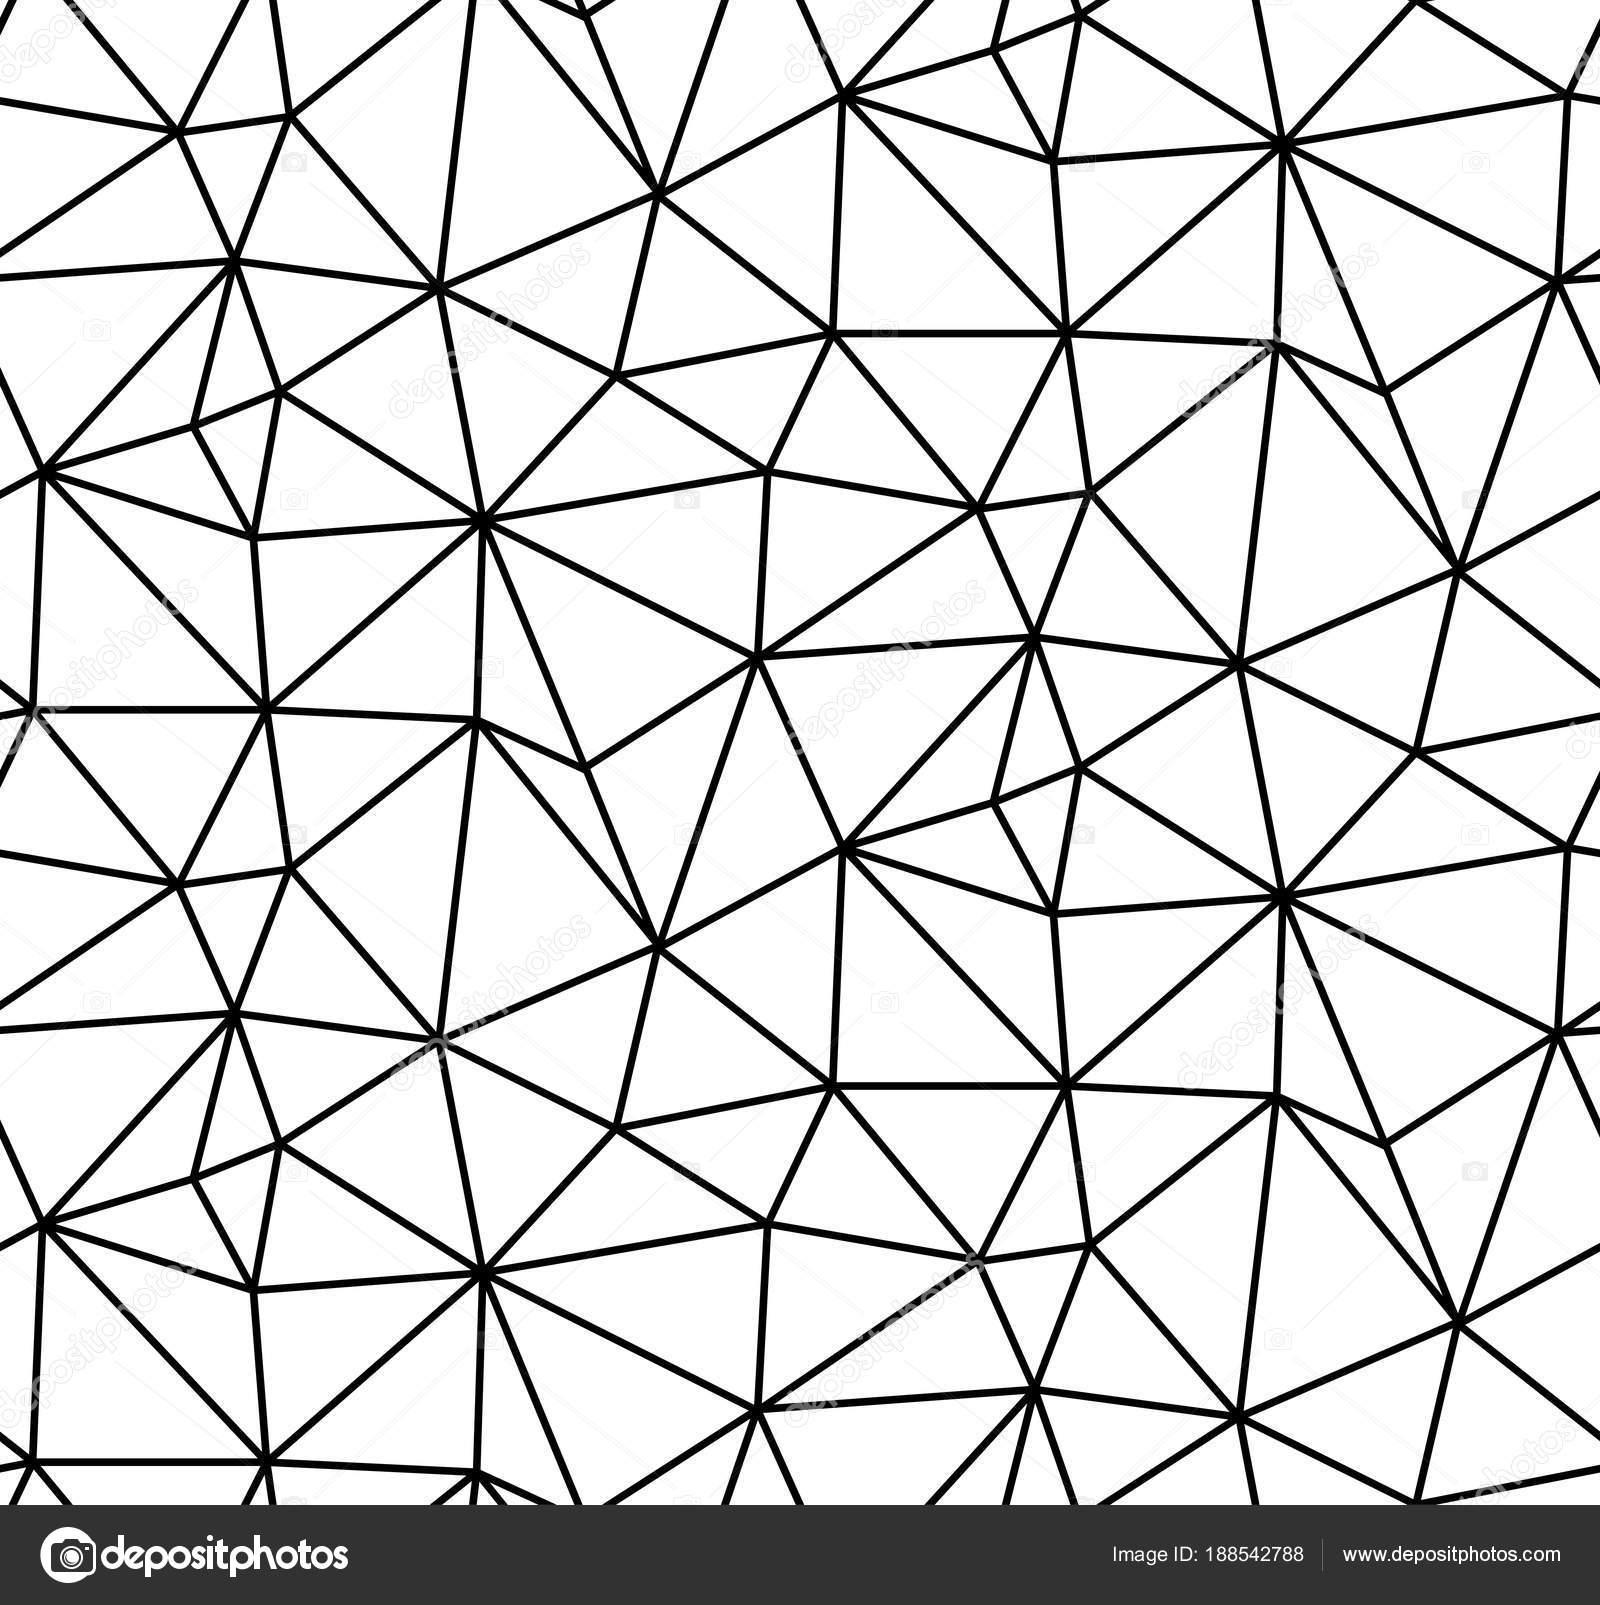 Abstract vector seamless background of broken lines monochrome polygonal pattern black white wallpaper